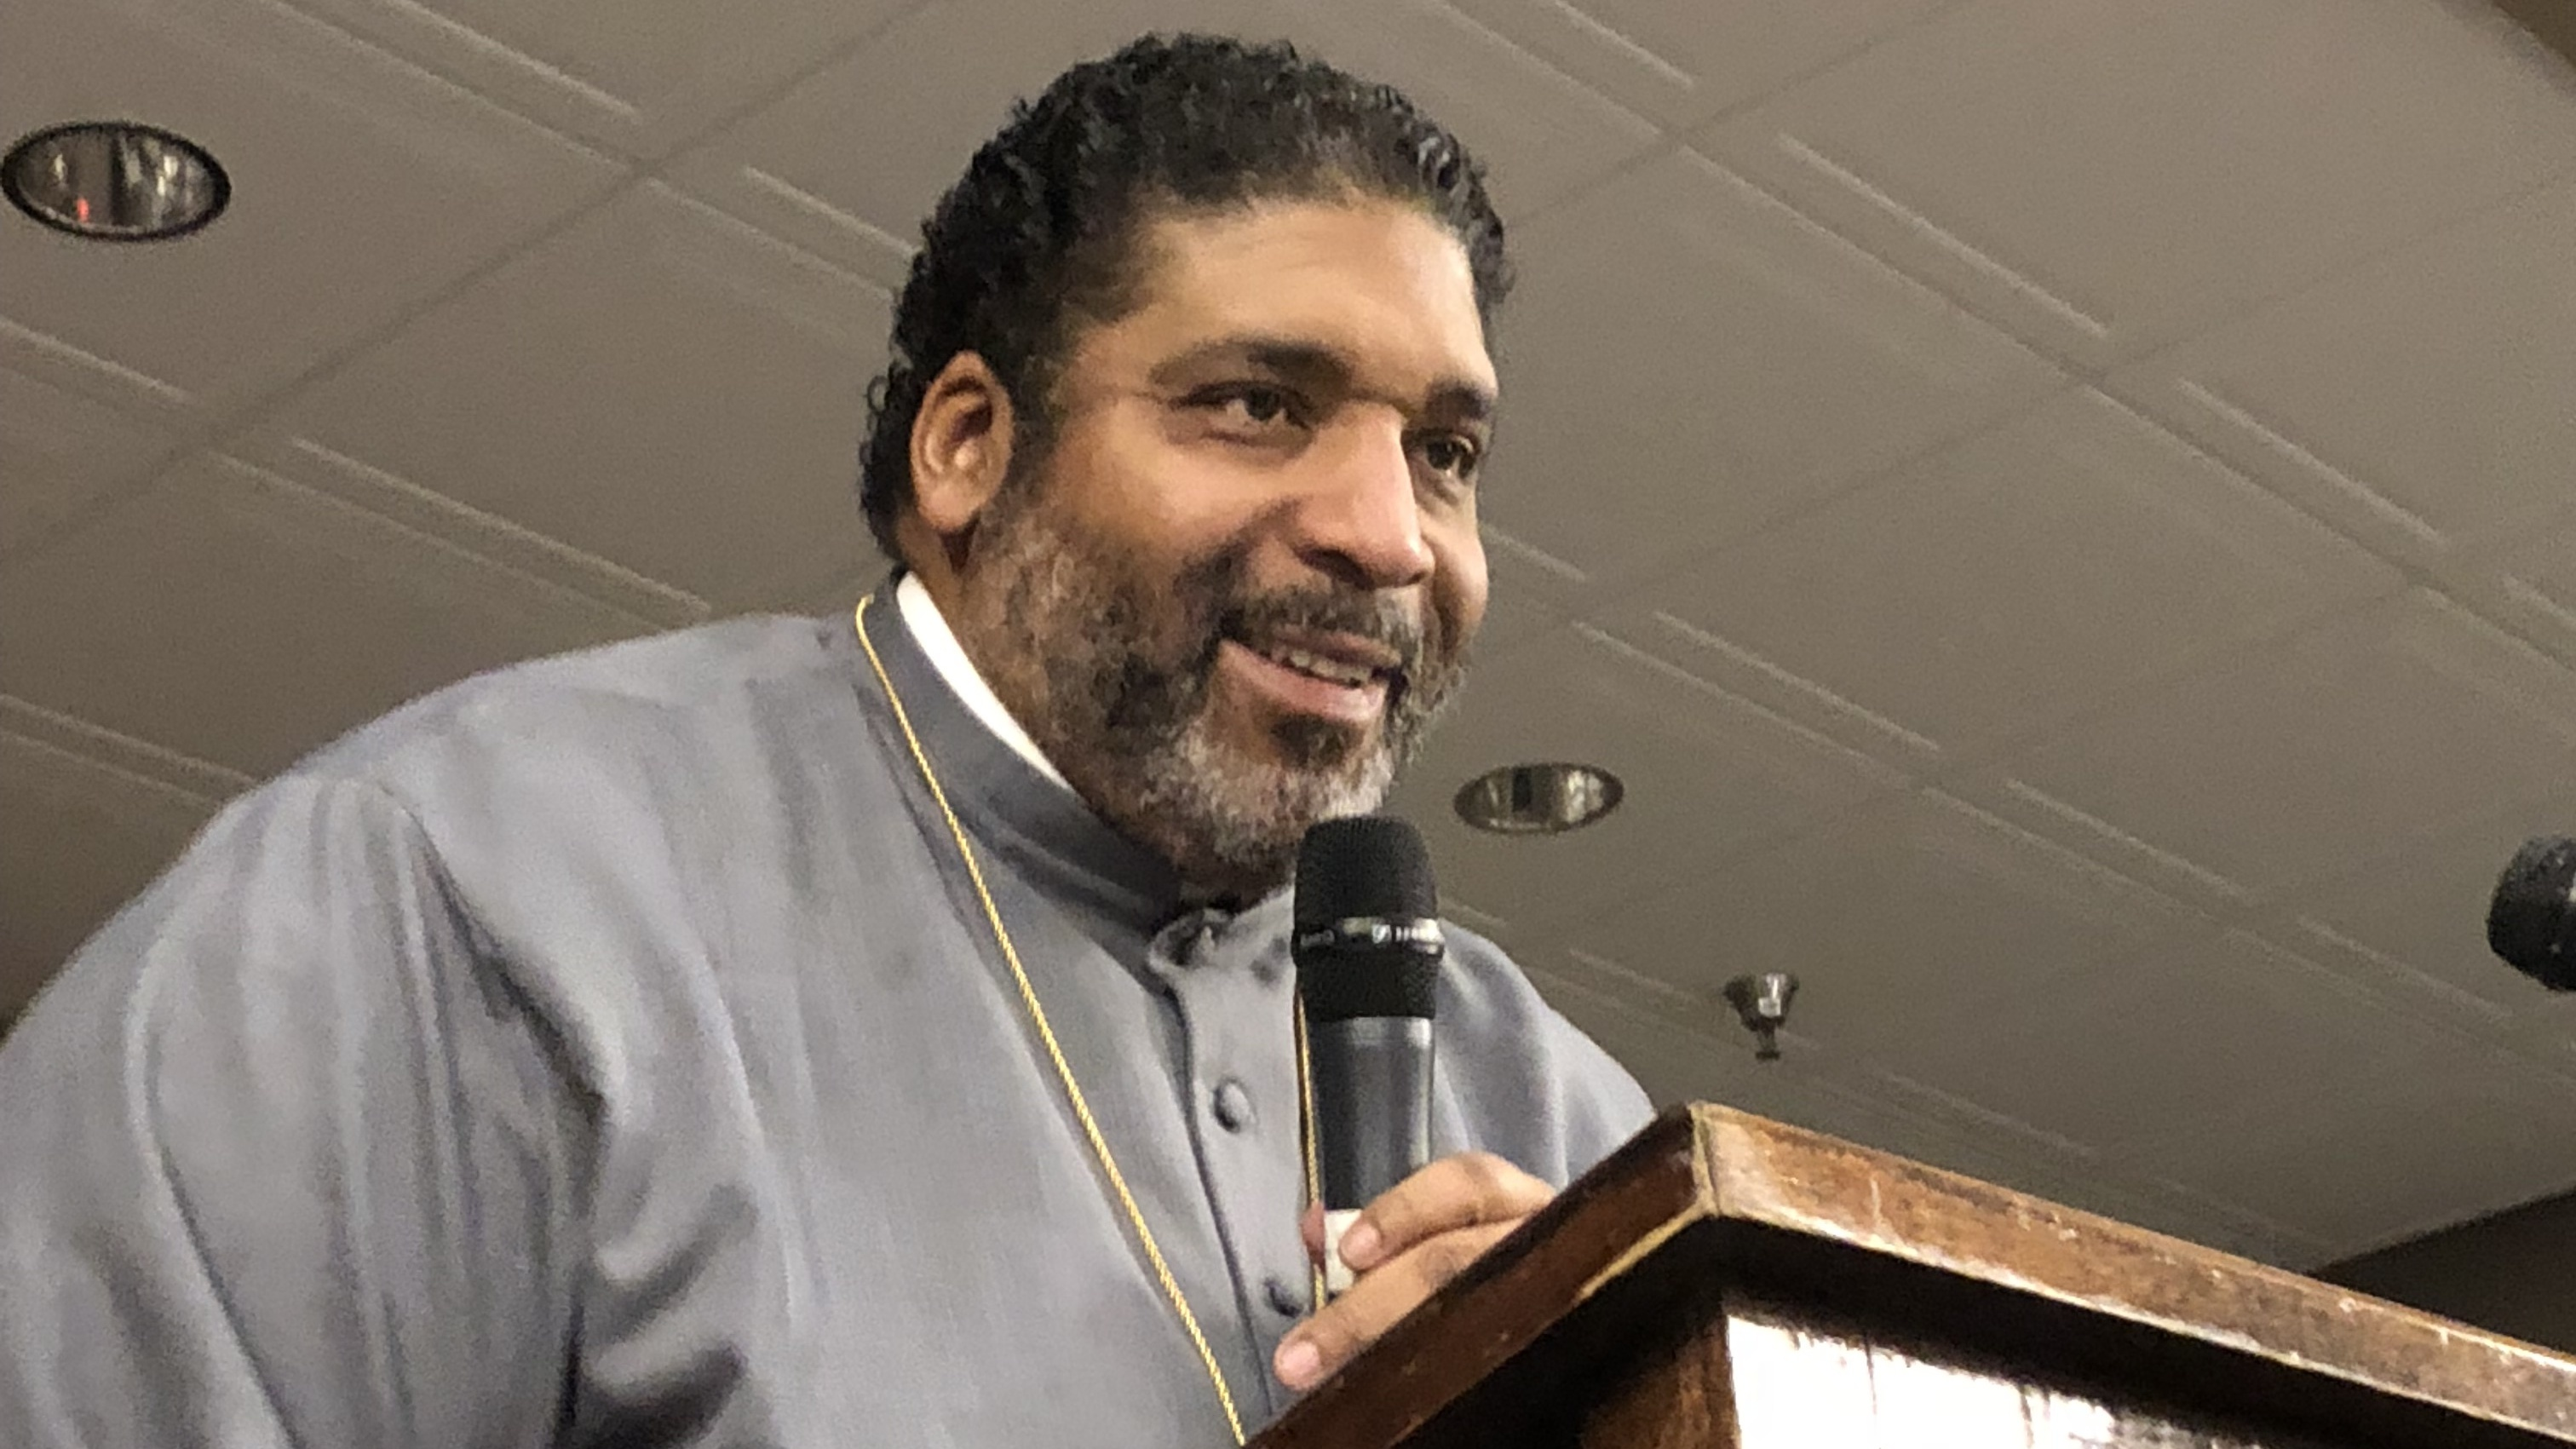 Preaching Gospel Of Love And Justice, William Barber